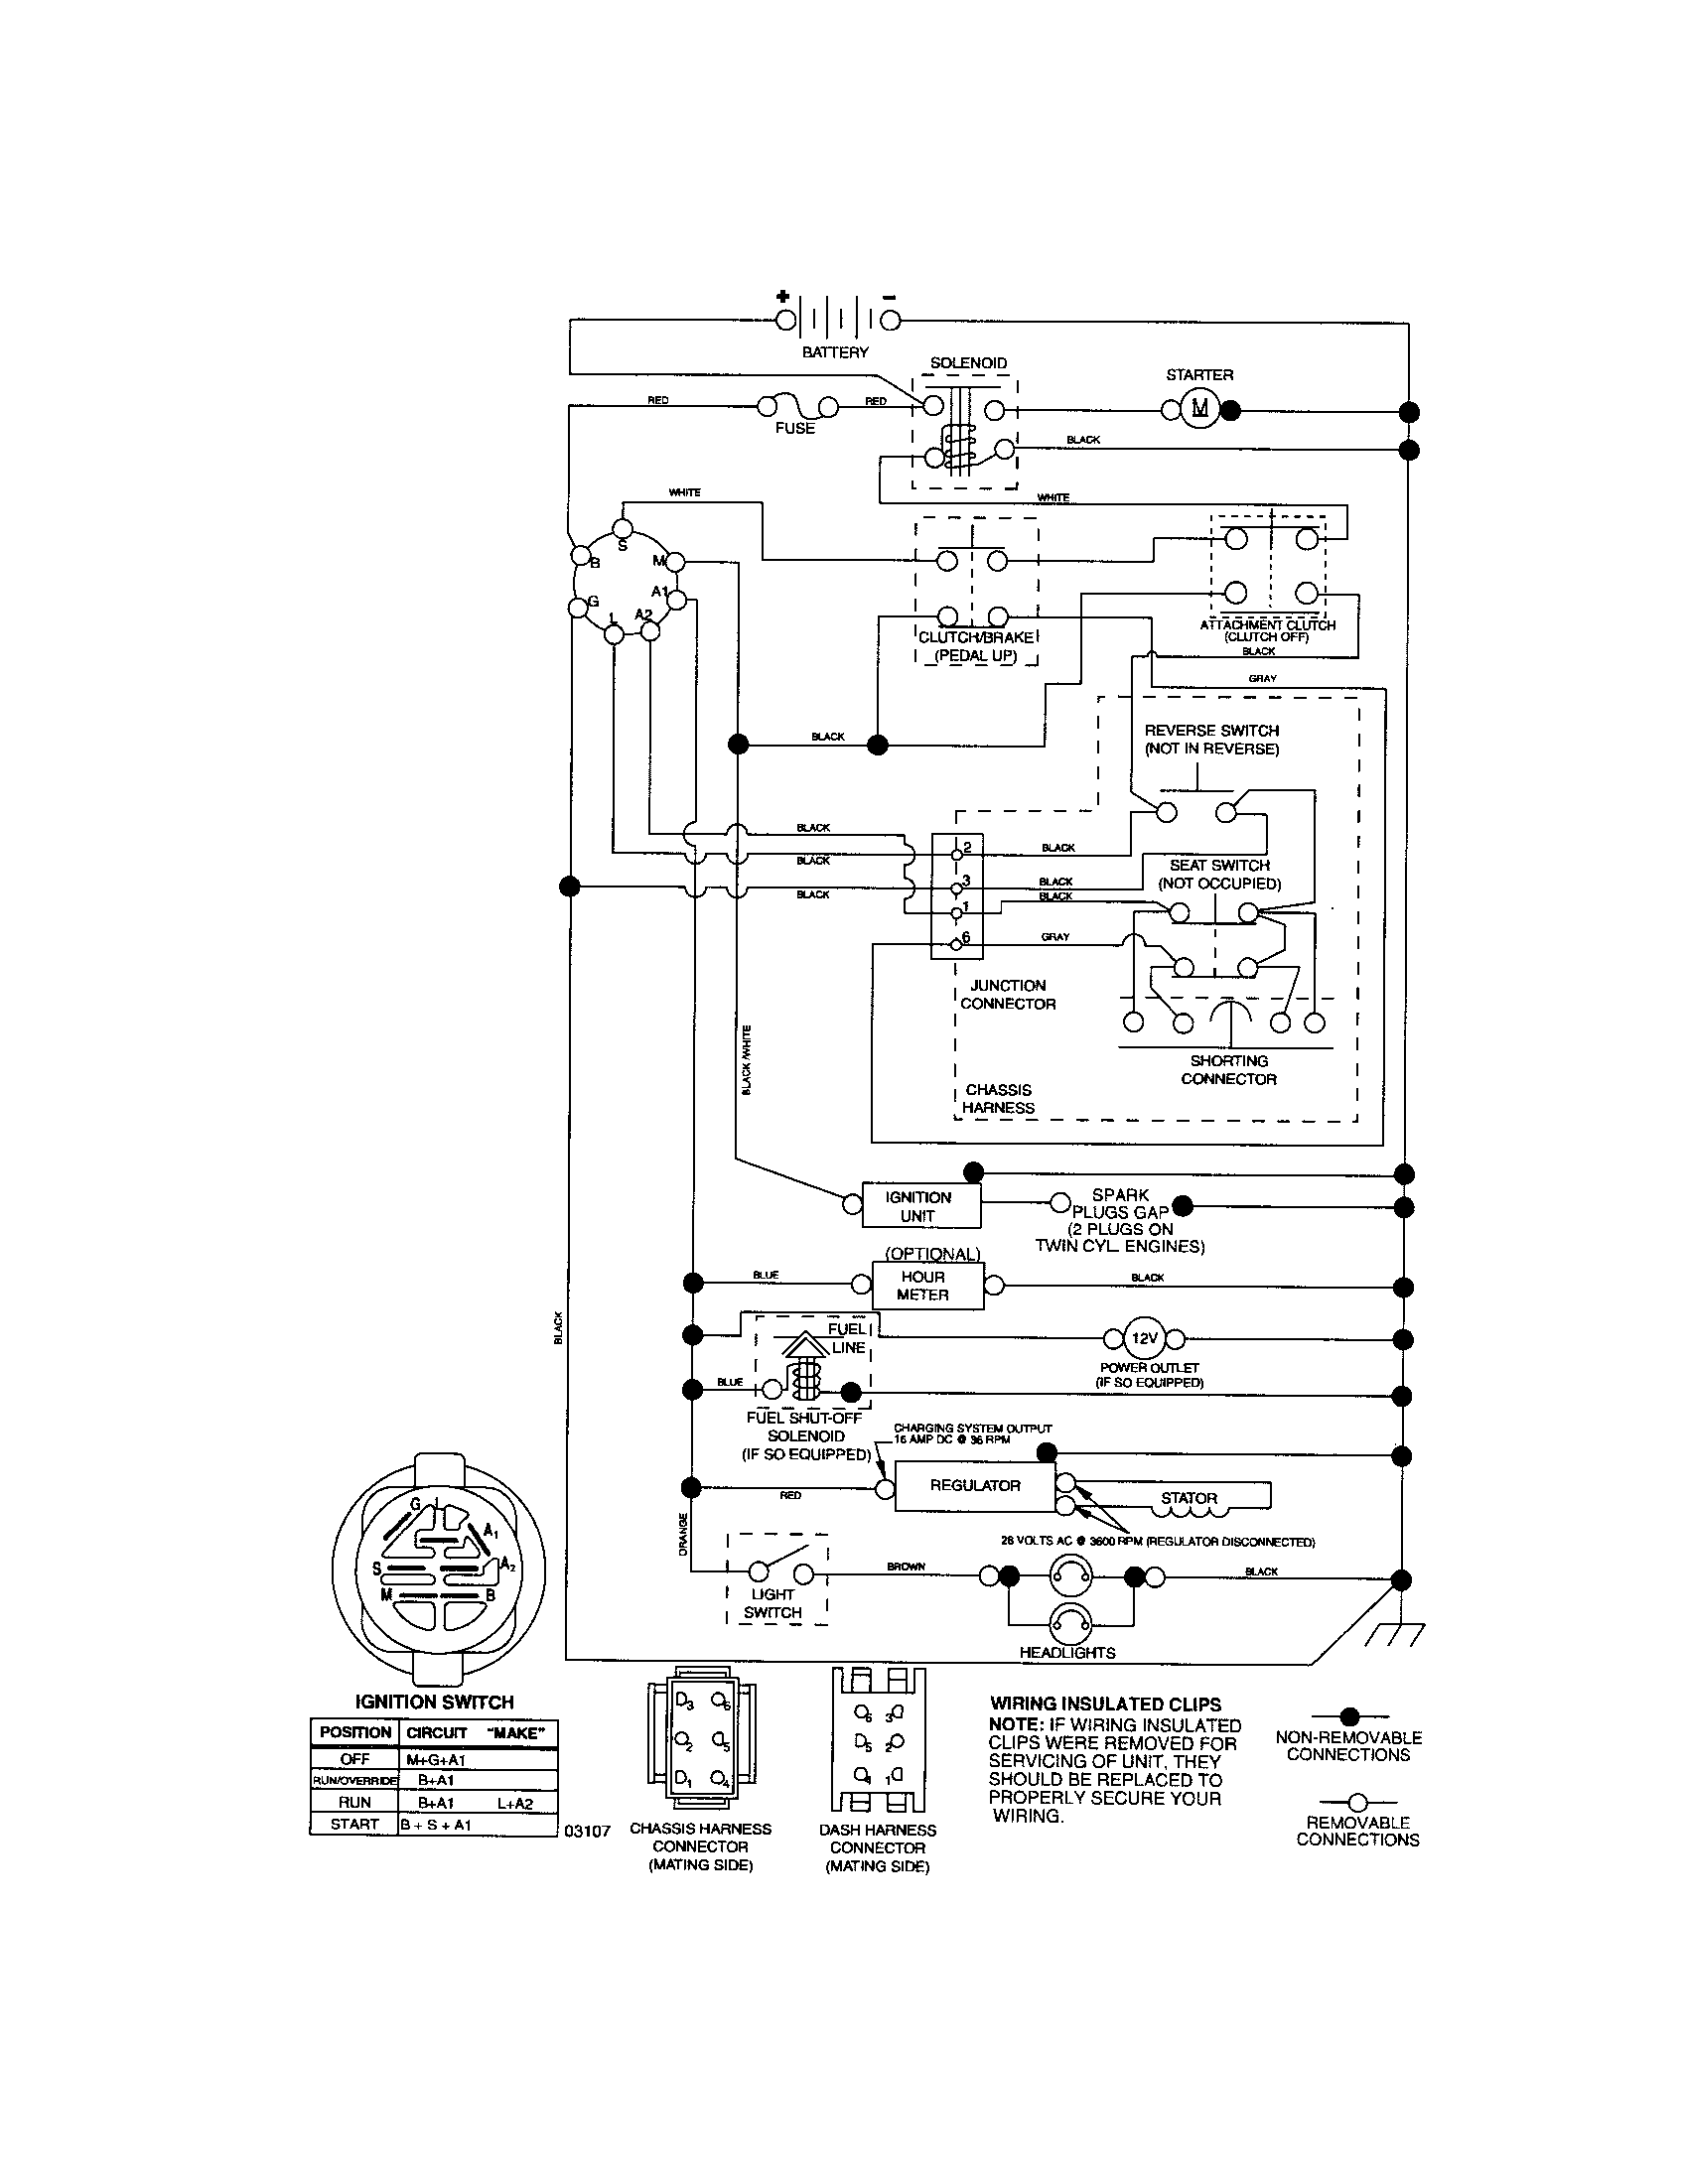 6af5f1447fd13c8443376822ddc1e105 Cushman Alternator Starter Wiring Diagram on oil wiring diagram, fan wiring diagram, air conditioning wiring diagram, starter coil diagram, transmission wiring diagram, battery wiring diagram, starter kill switch diagram, auto parts wiring diagram, power window wiring diagram,